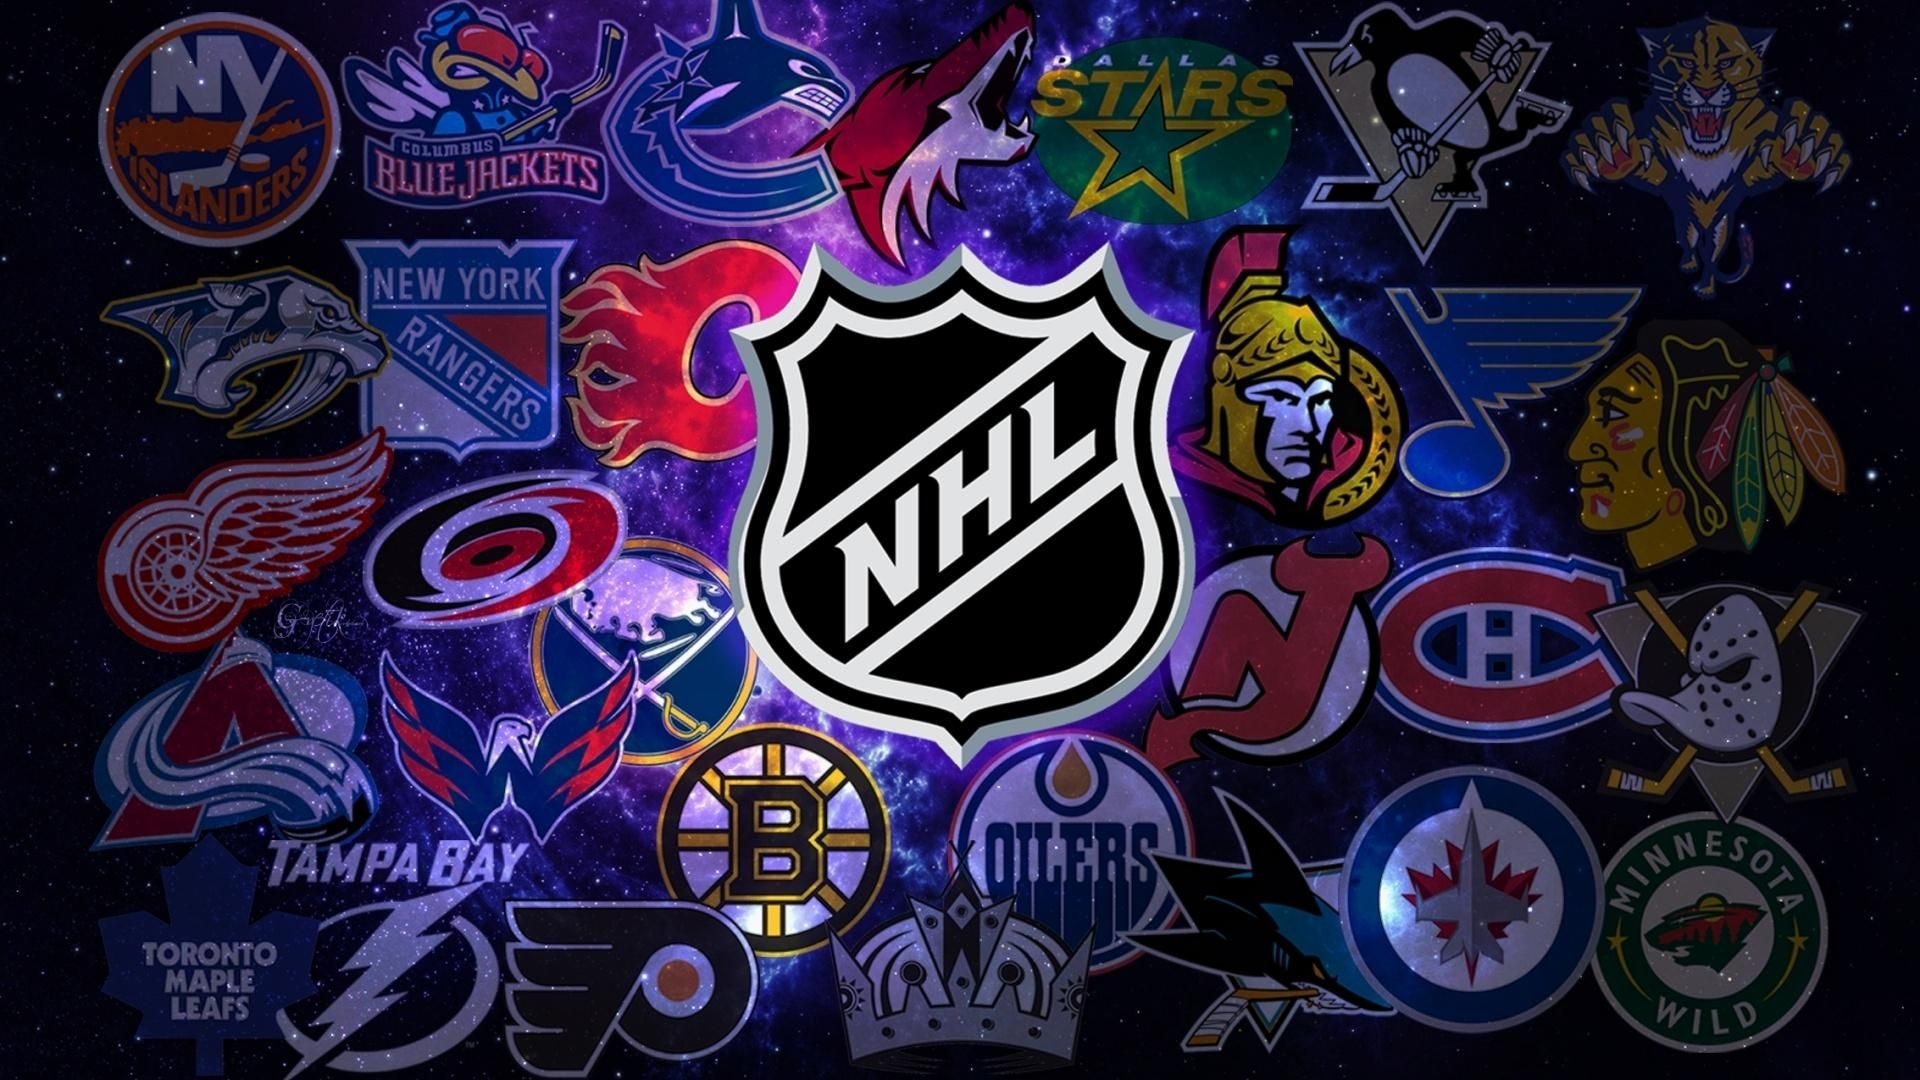 HD Hockey Wallpaper 1920x1080 Pictures Wallpapers 47